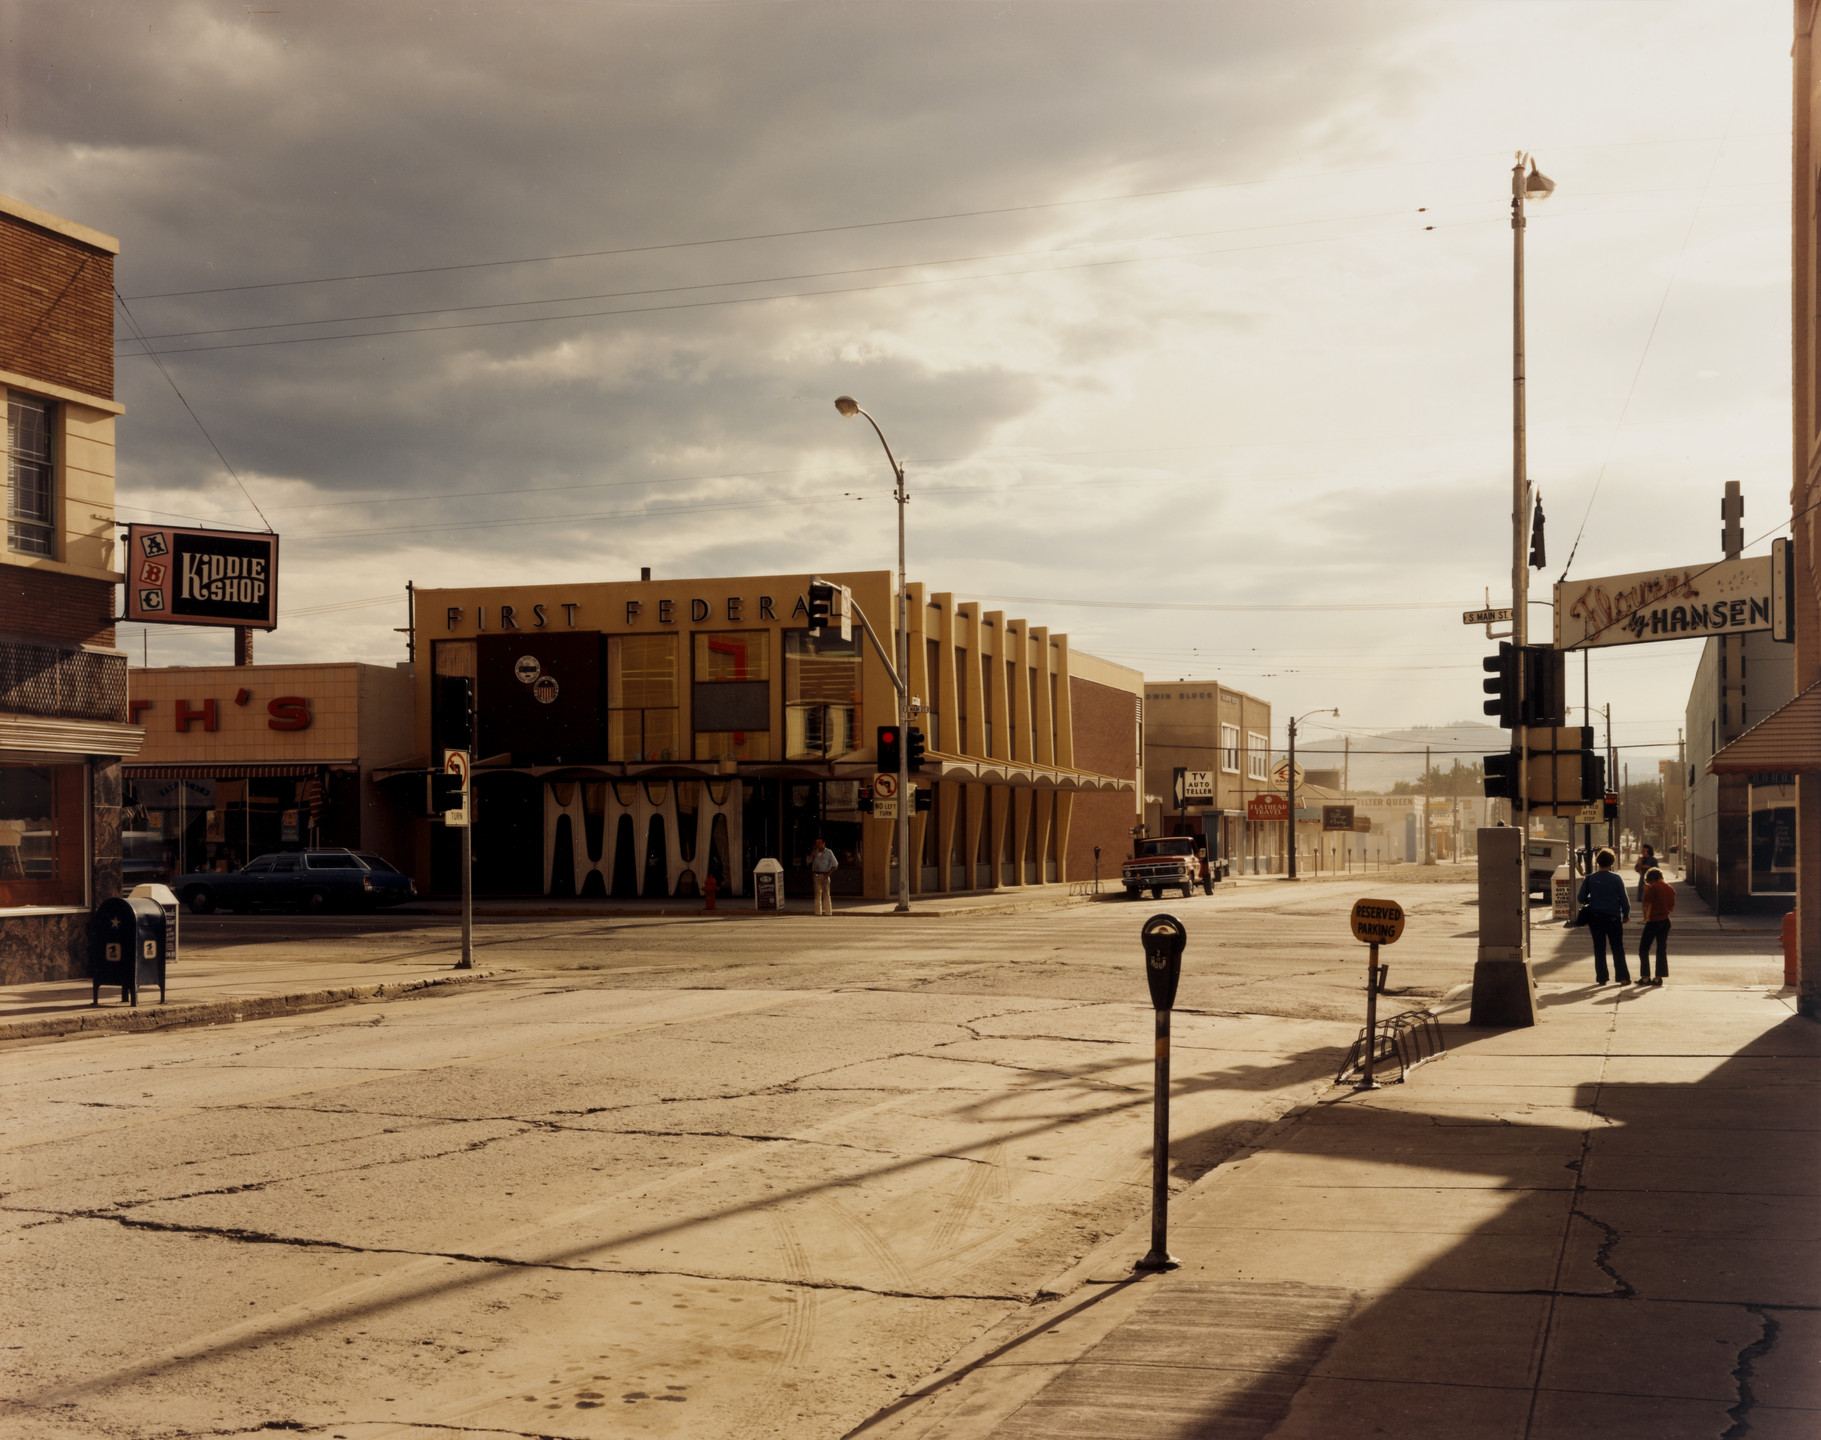 Stephen Shore. 2nd Street East and South Main Street, Kalispell, Montana, August 22, 1974. 1974